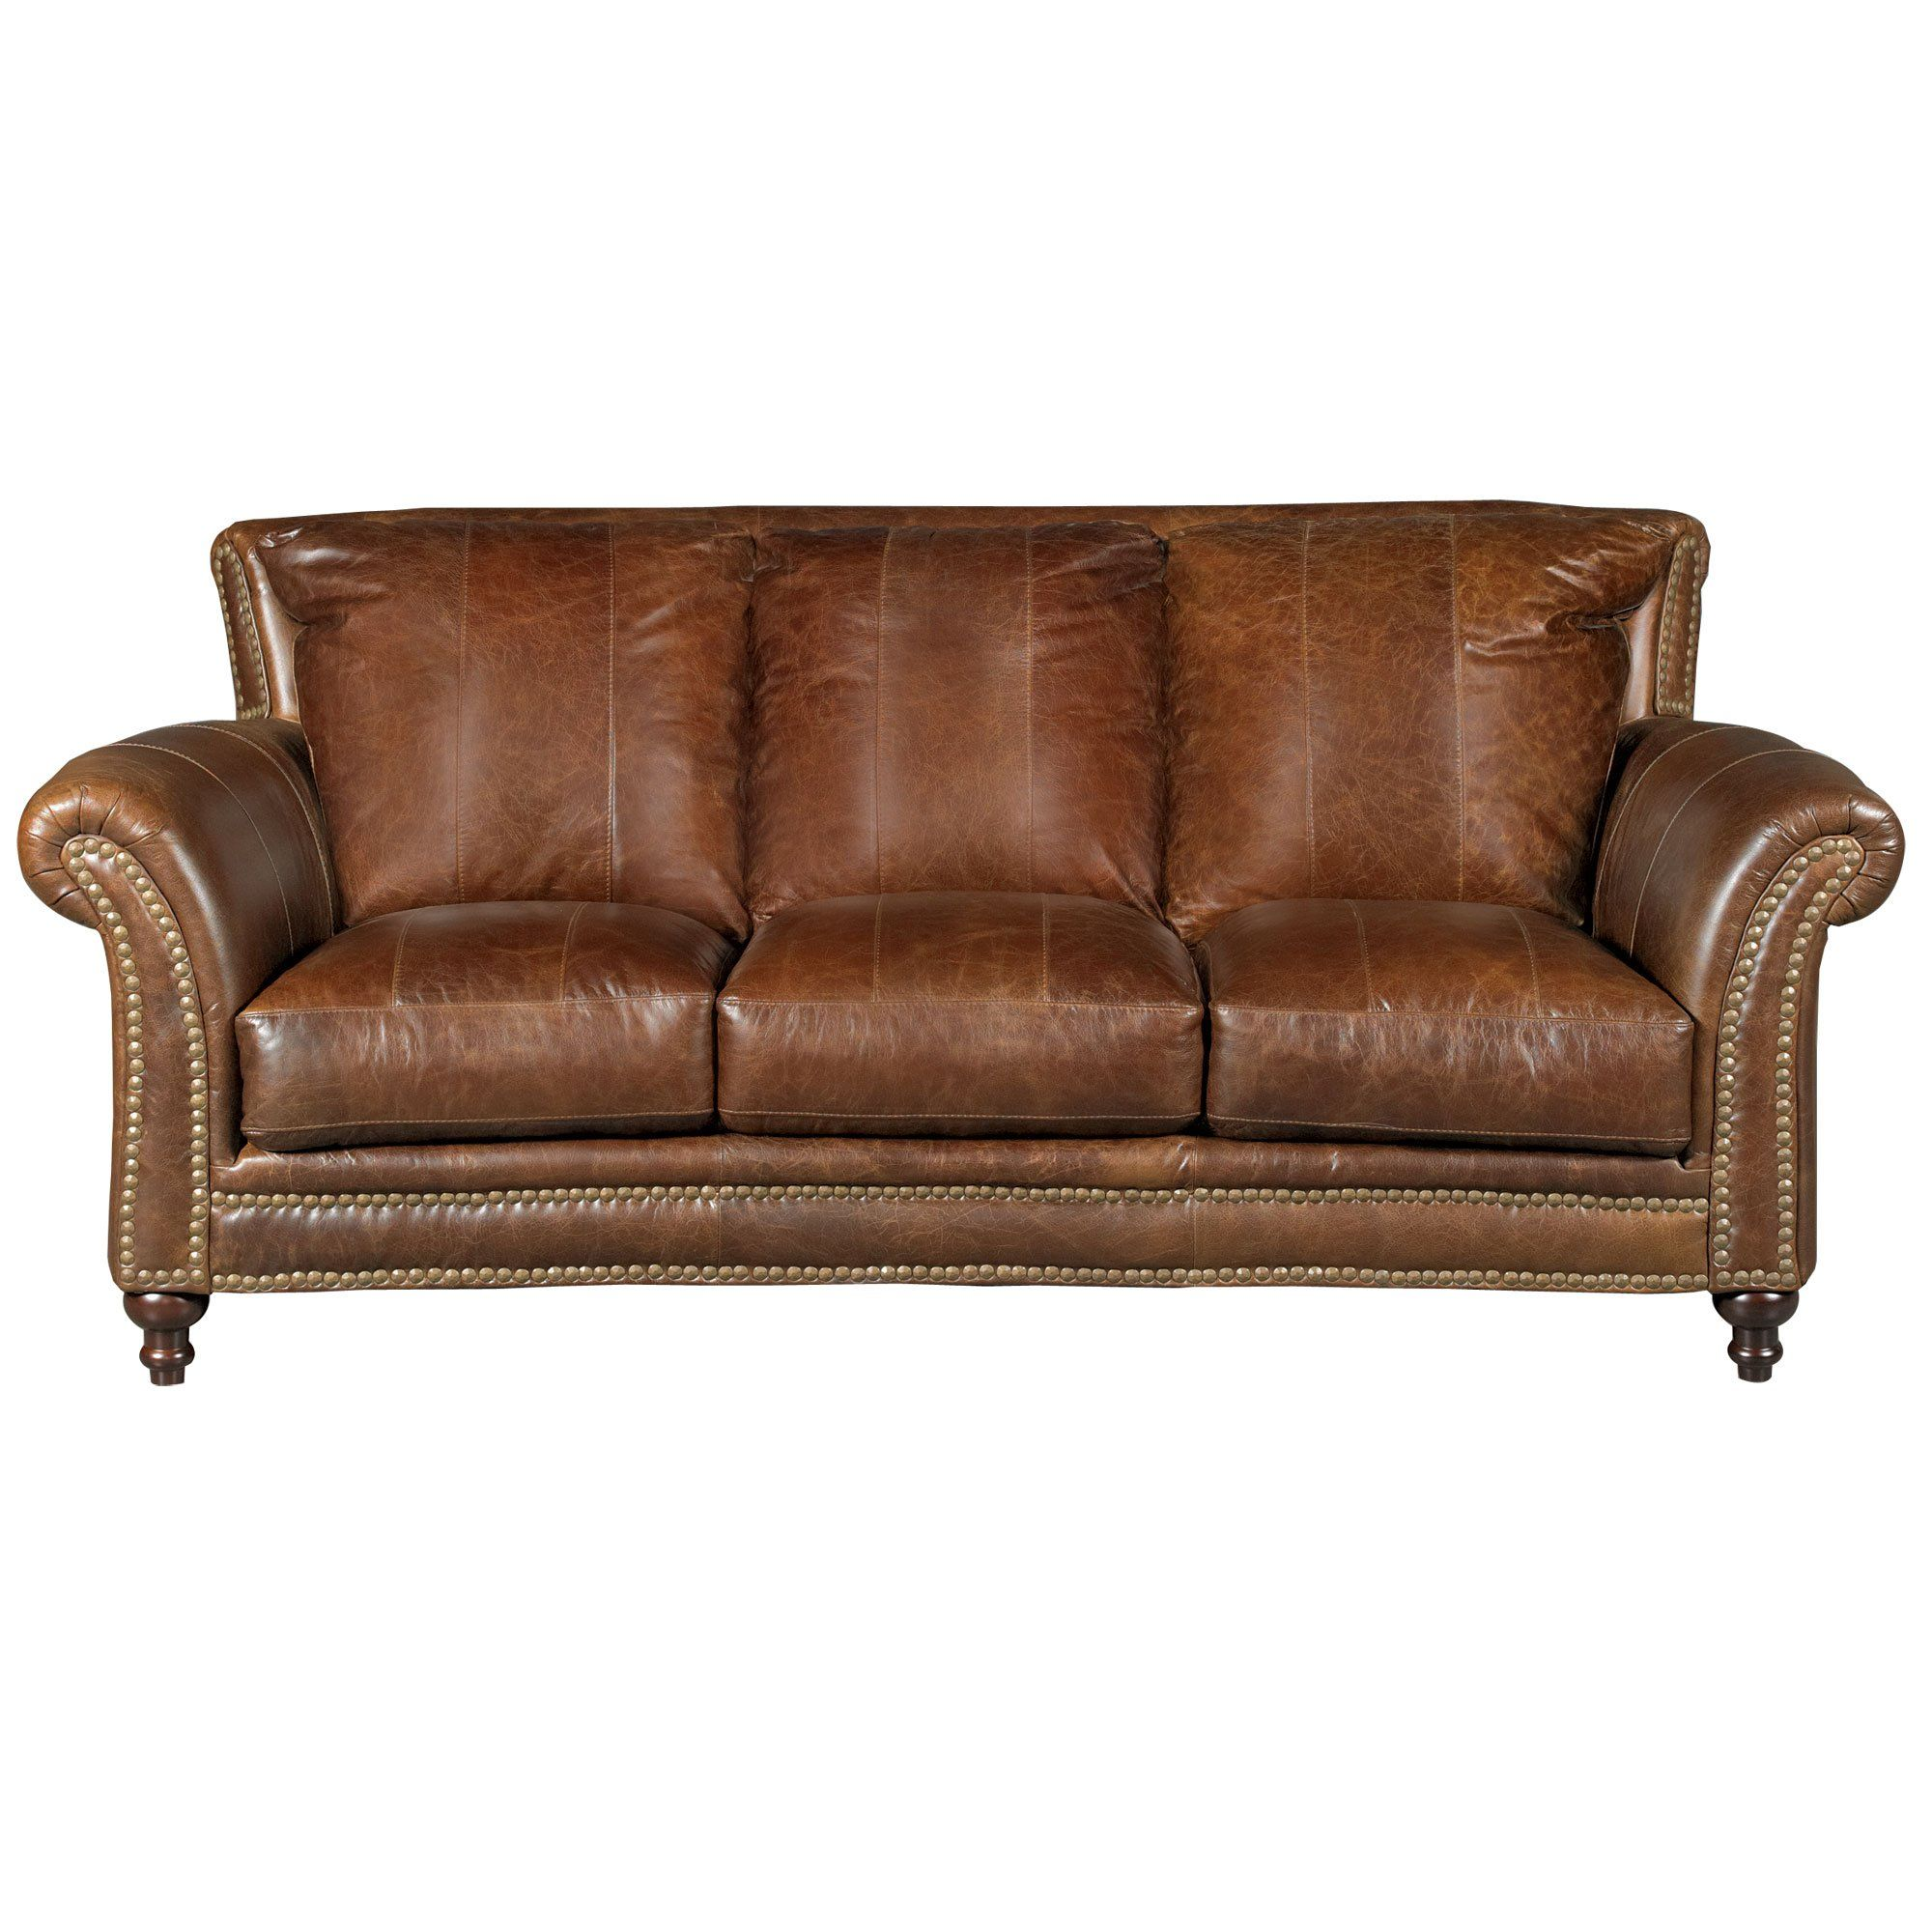 Classic Traditional Brown Leather Sofa Butler Brown Leather Sofa Quality Living Room Furniture Leather Sofa